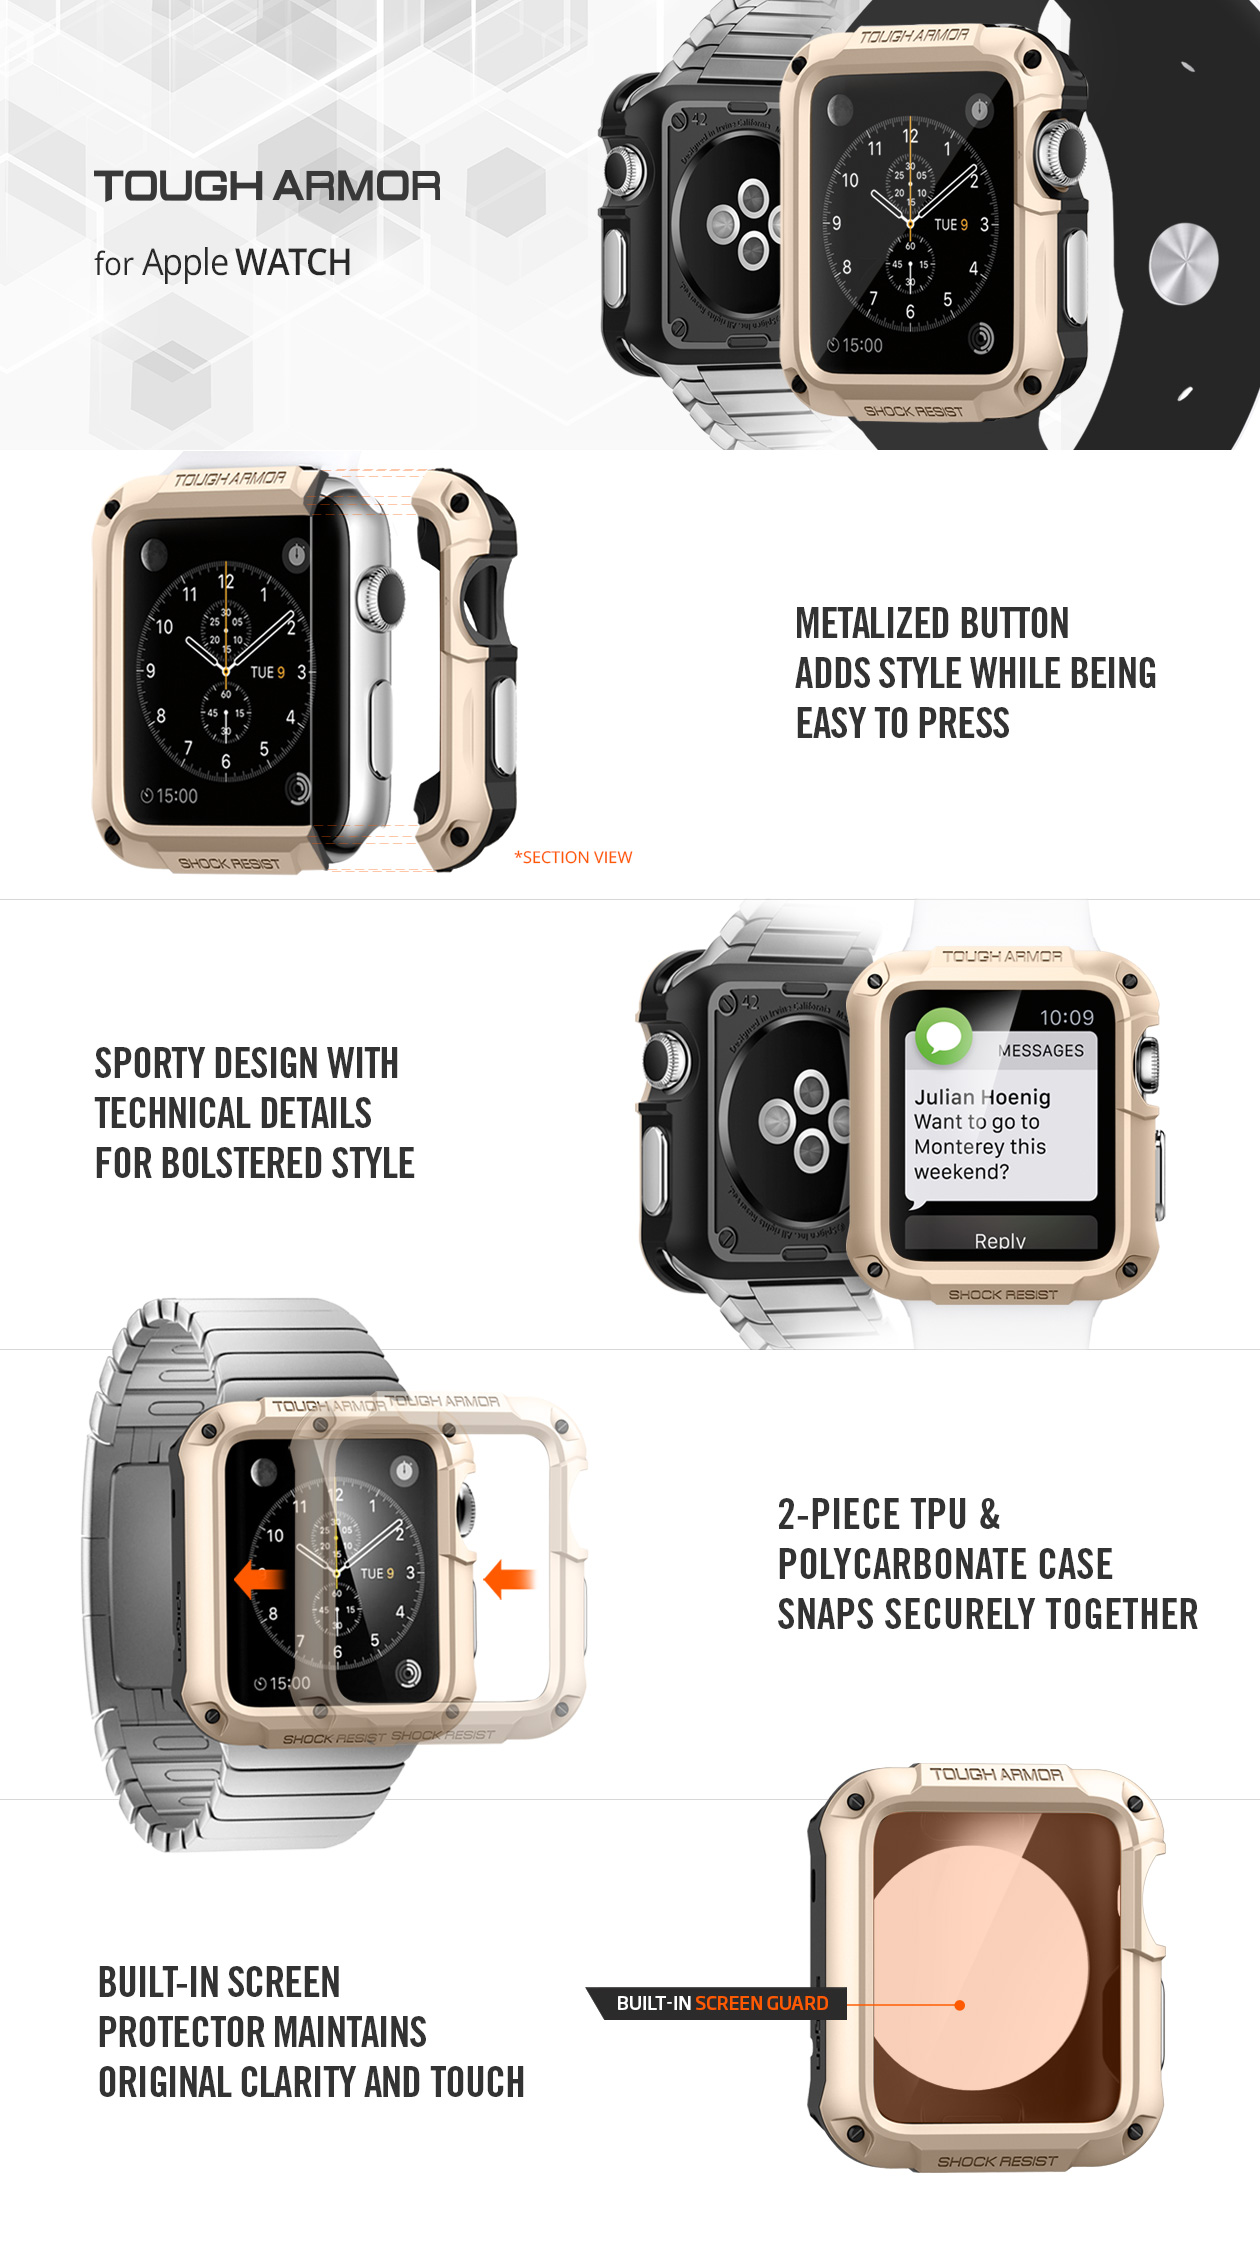 Buy Apple Watch Casing By Spigen Case Cover Screen Protector Strap Iphone 9 Anti Shock With Stand Tough Armor Original Band Deals For Only S49 Instead Of